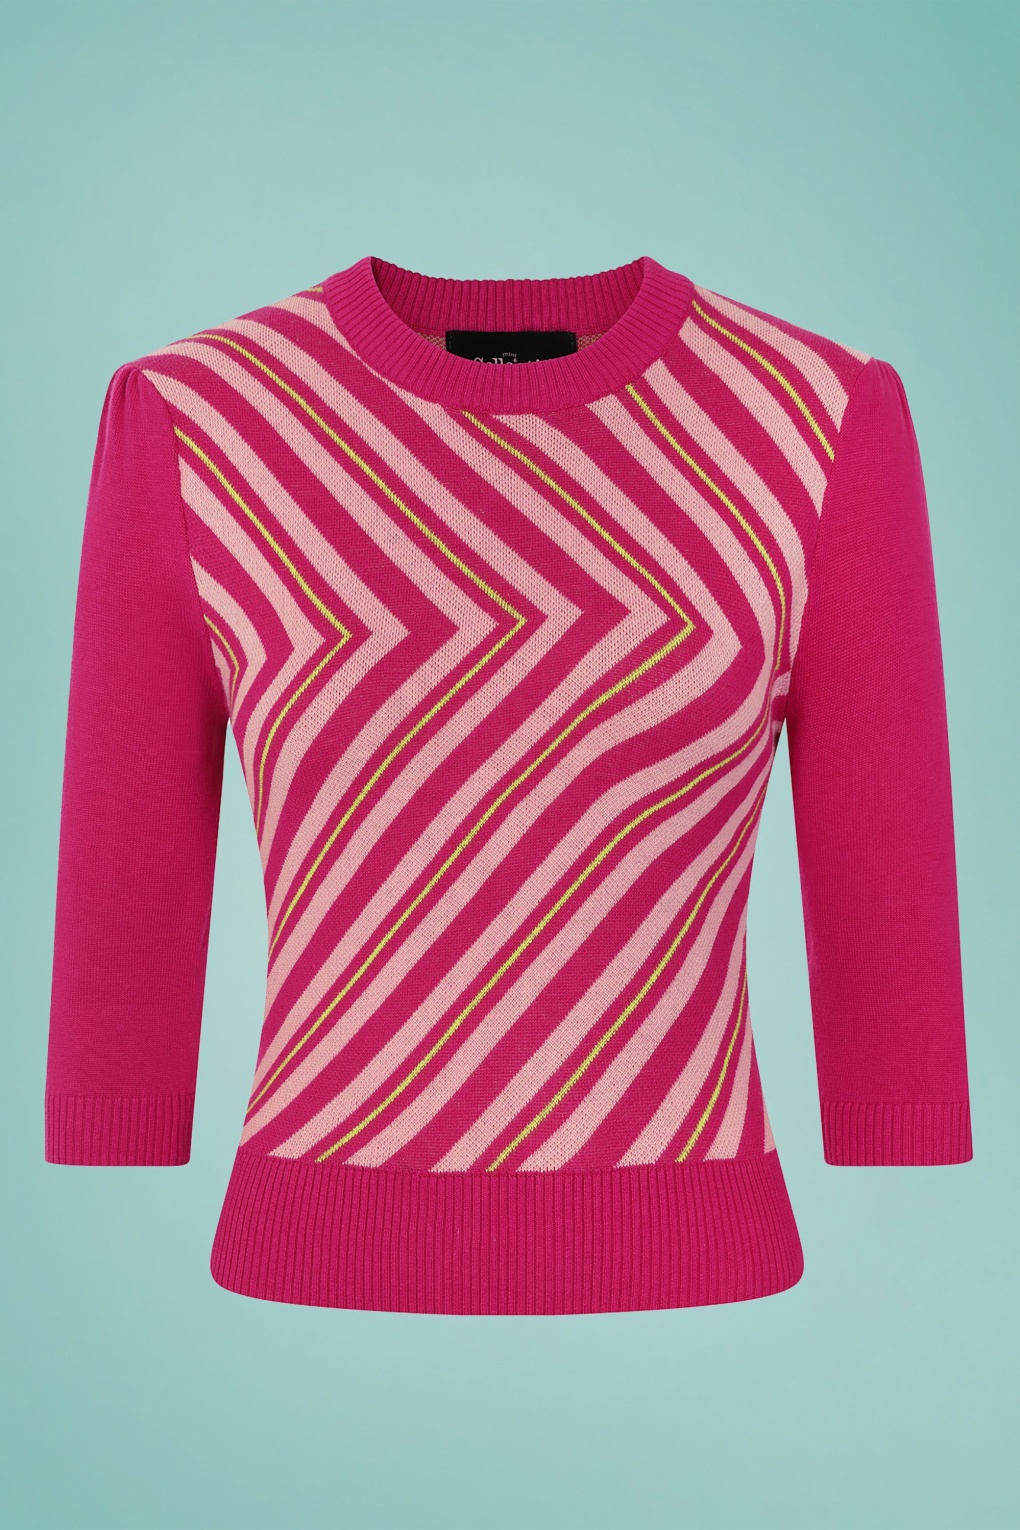 60s Shirts, T-shirts, Blouses, Hippie Shirts 60s Christie V Stripe Knitted Top in Raspberry £38.91 AT vintagedancer.com